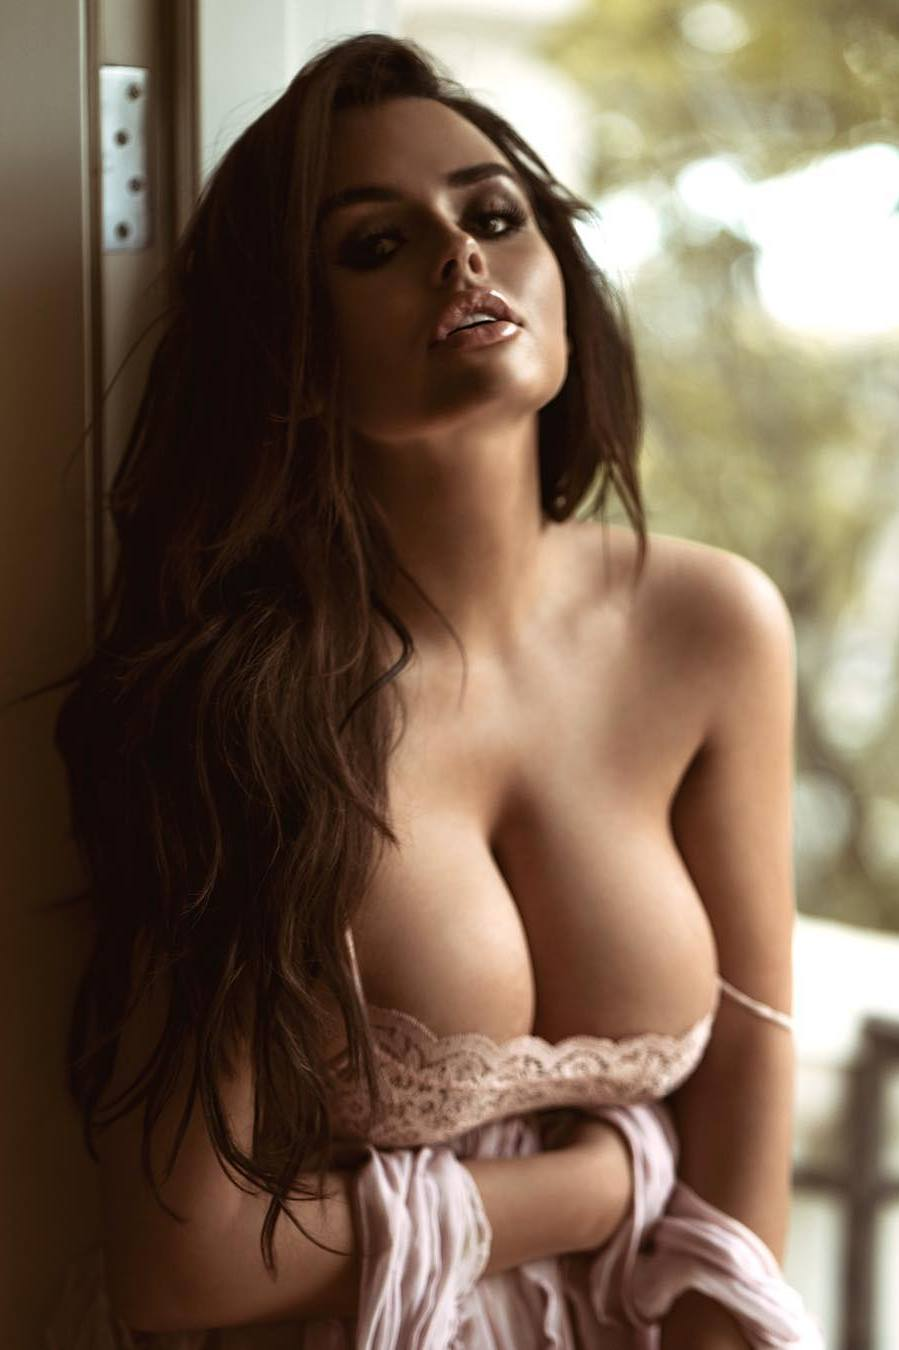 Cleavage Abigail Ratchford nudes (25 foto and video), Ass, Leaked, Selfie, cameltoe 2015